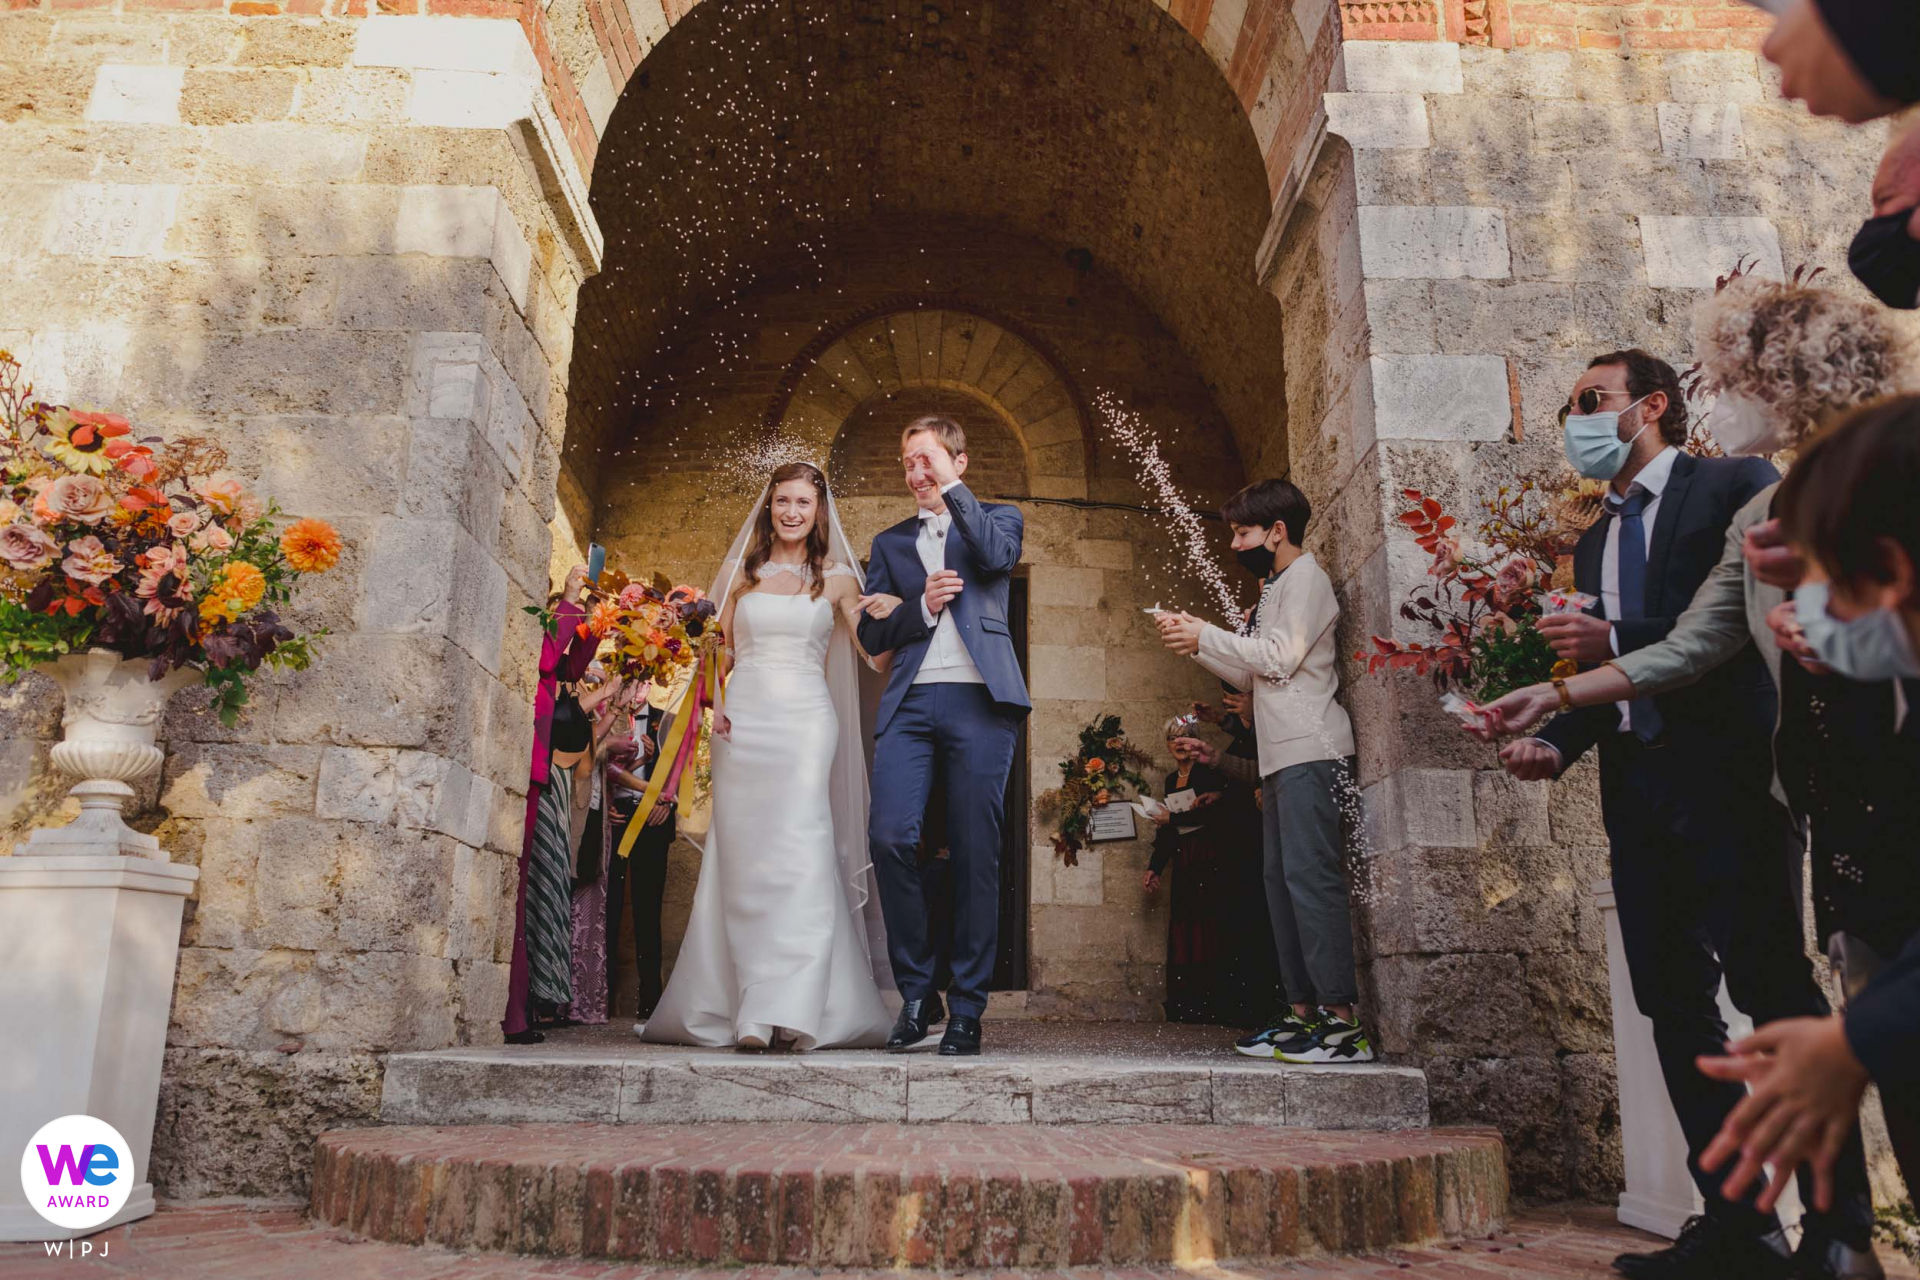 Elopement Photography at San Galgano Abbey   Here we see the couple exiting the ceremony arm-in-arm